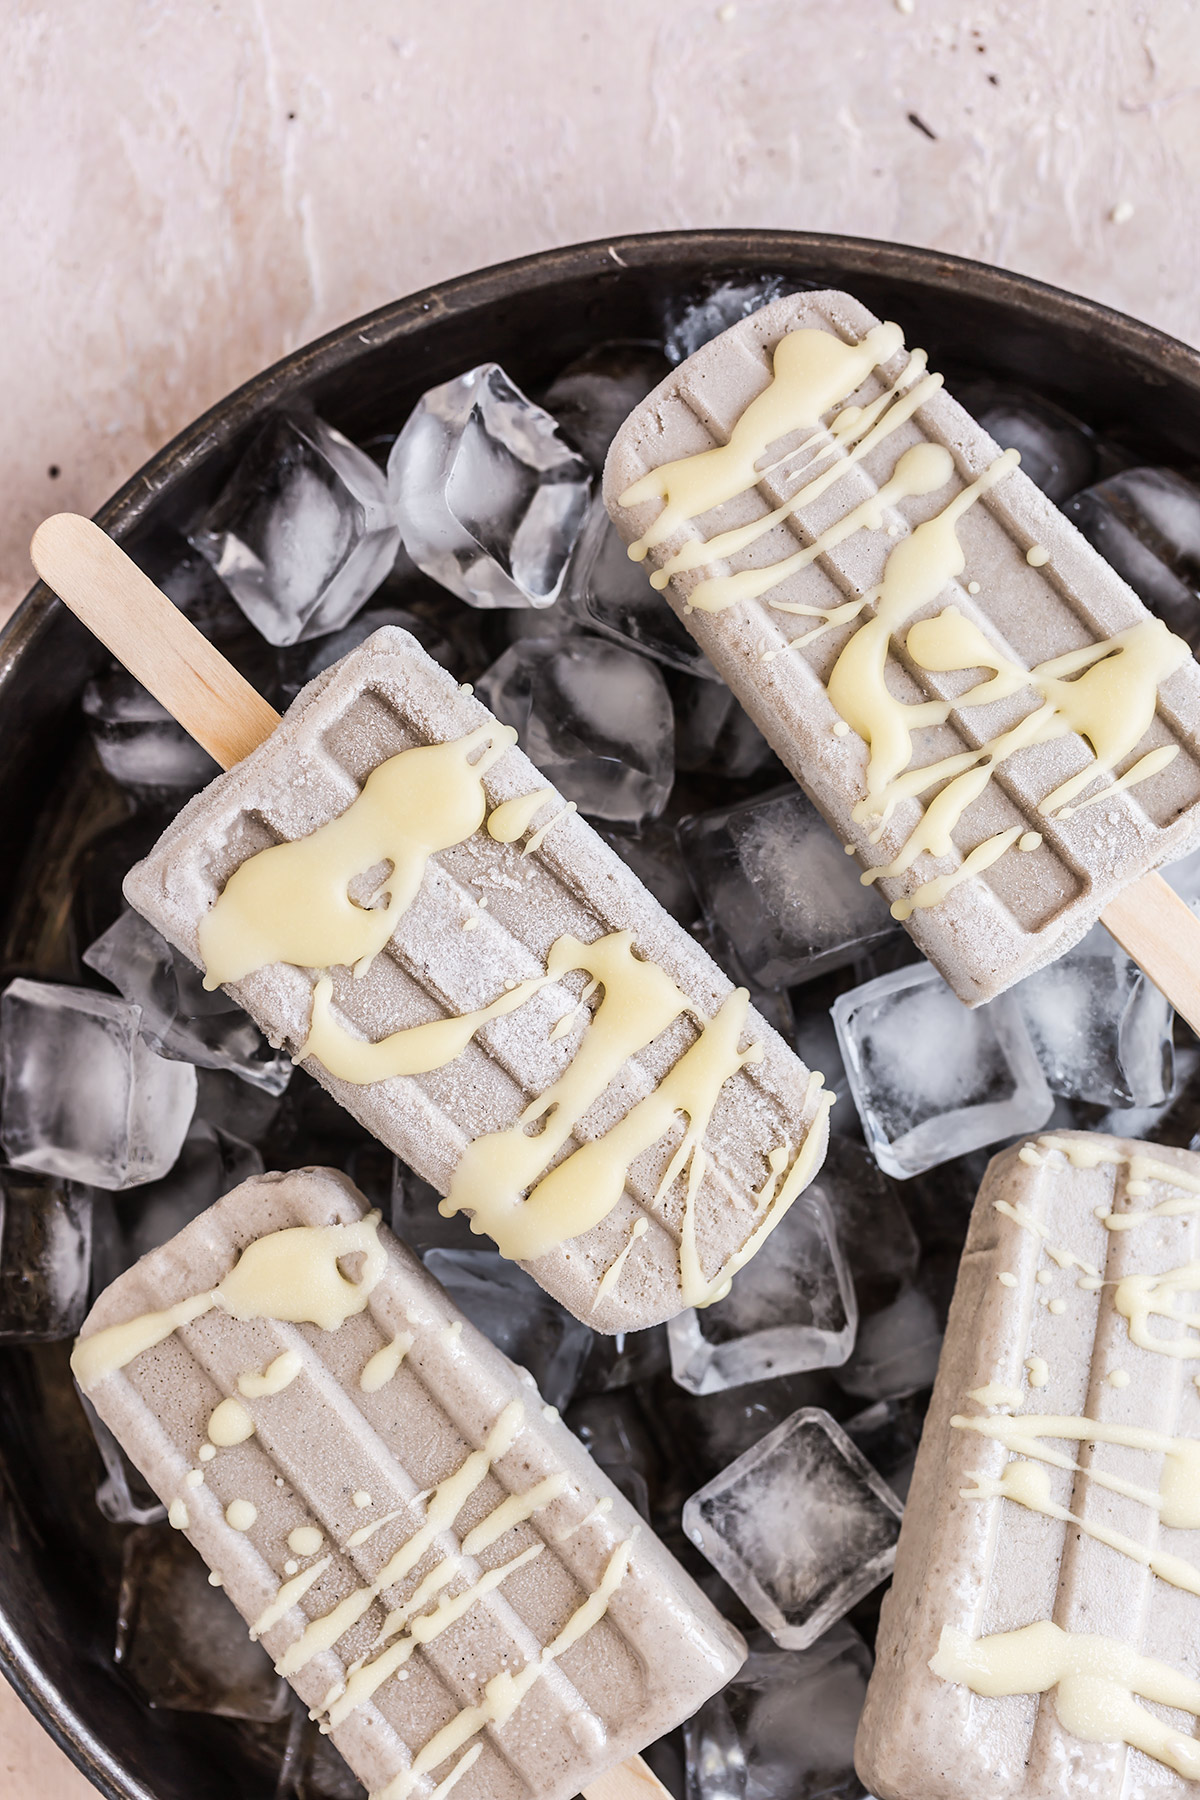 Nice cream alla banana e tahina senza gelatiera e glassa al cioccolato bianco banana tahini popsicles nice cream with white chocolate glaze